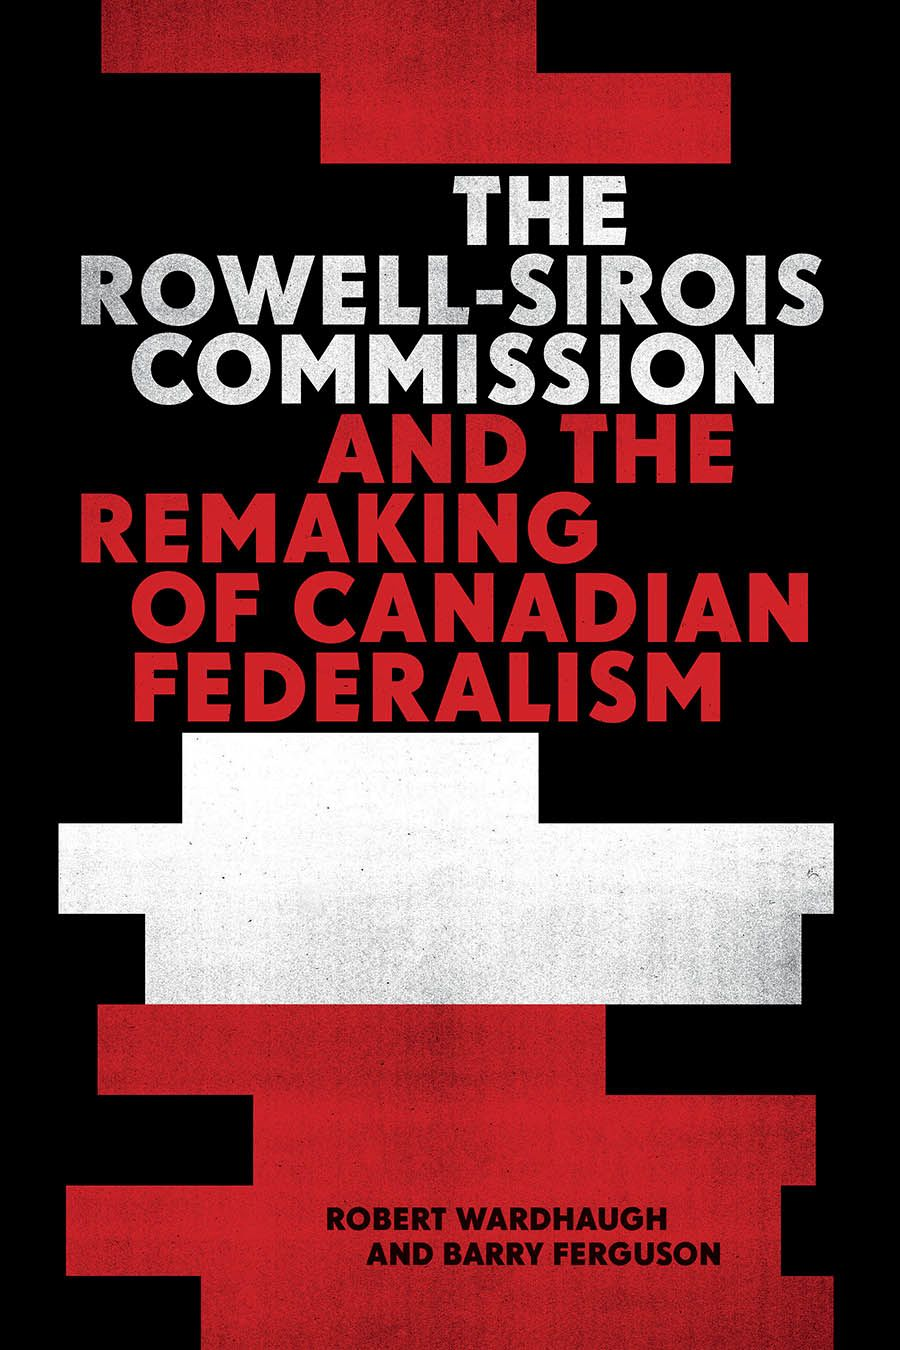 The Rowell-Sirois Commission and the Remaking of Canadian Federalism